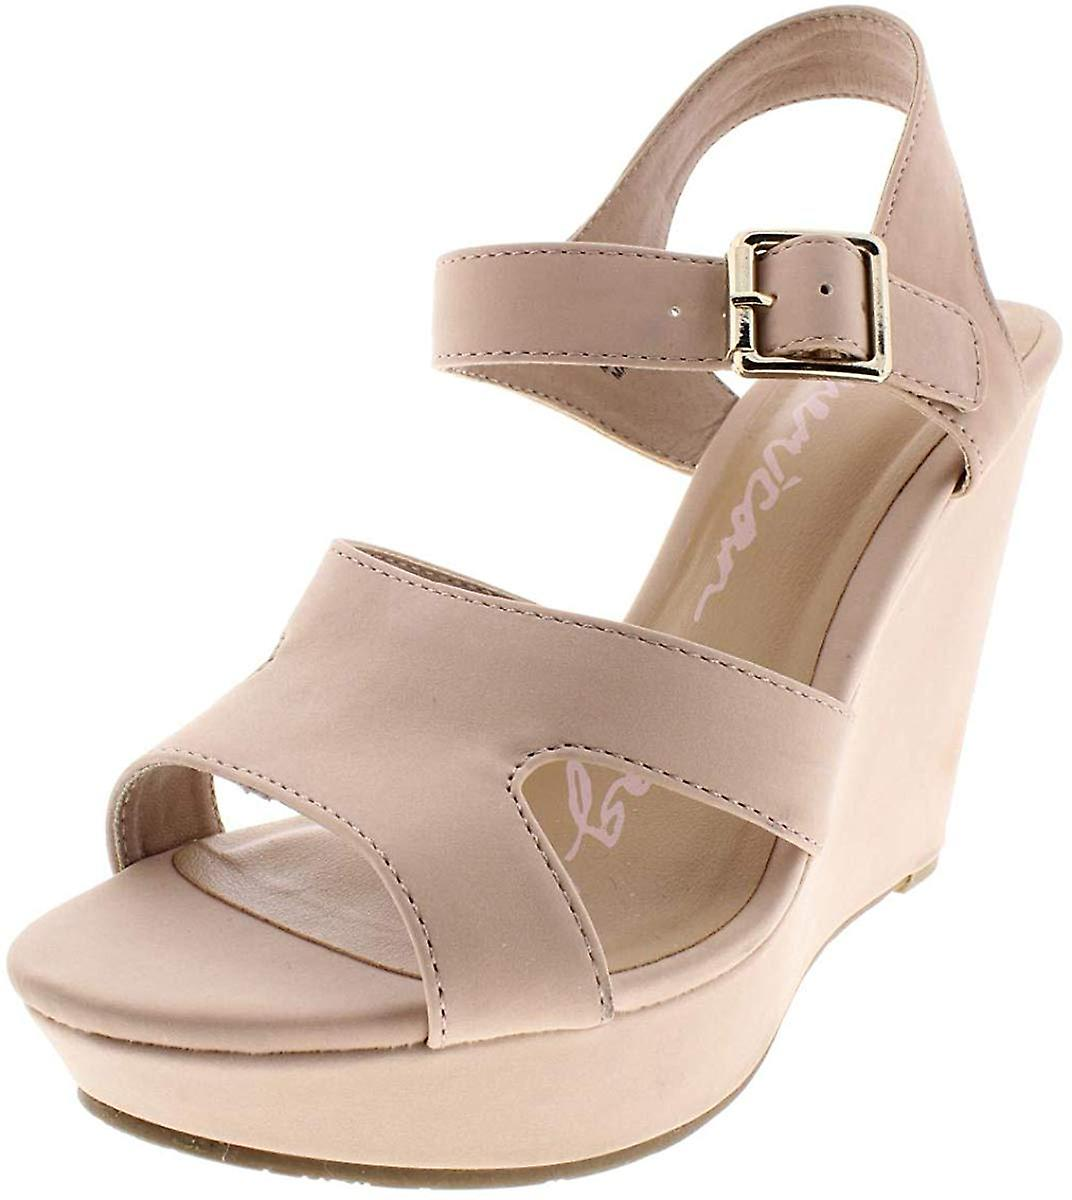 American Rag Womens ARChellep Open Toe Casual Ankle Strap Sandals